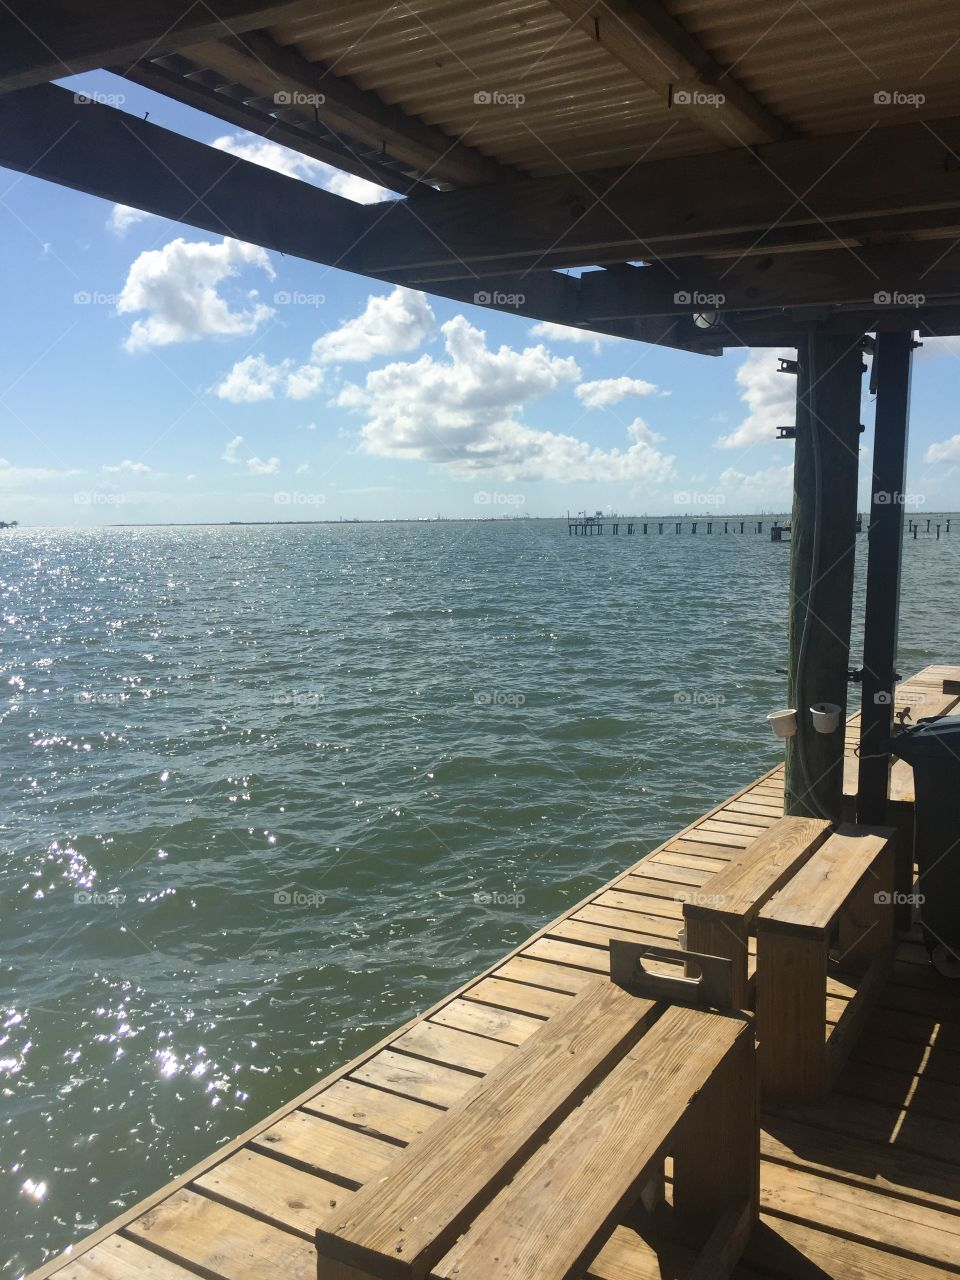 San-Leon, TX.  Galveston Bay